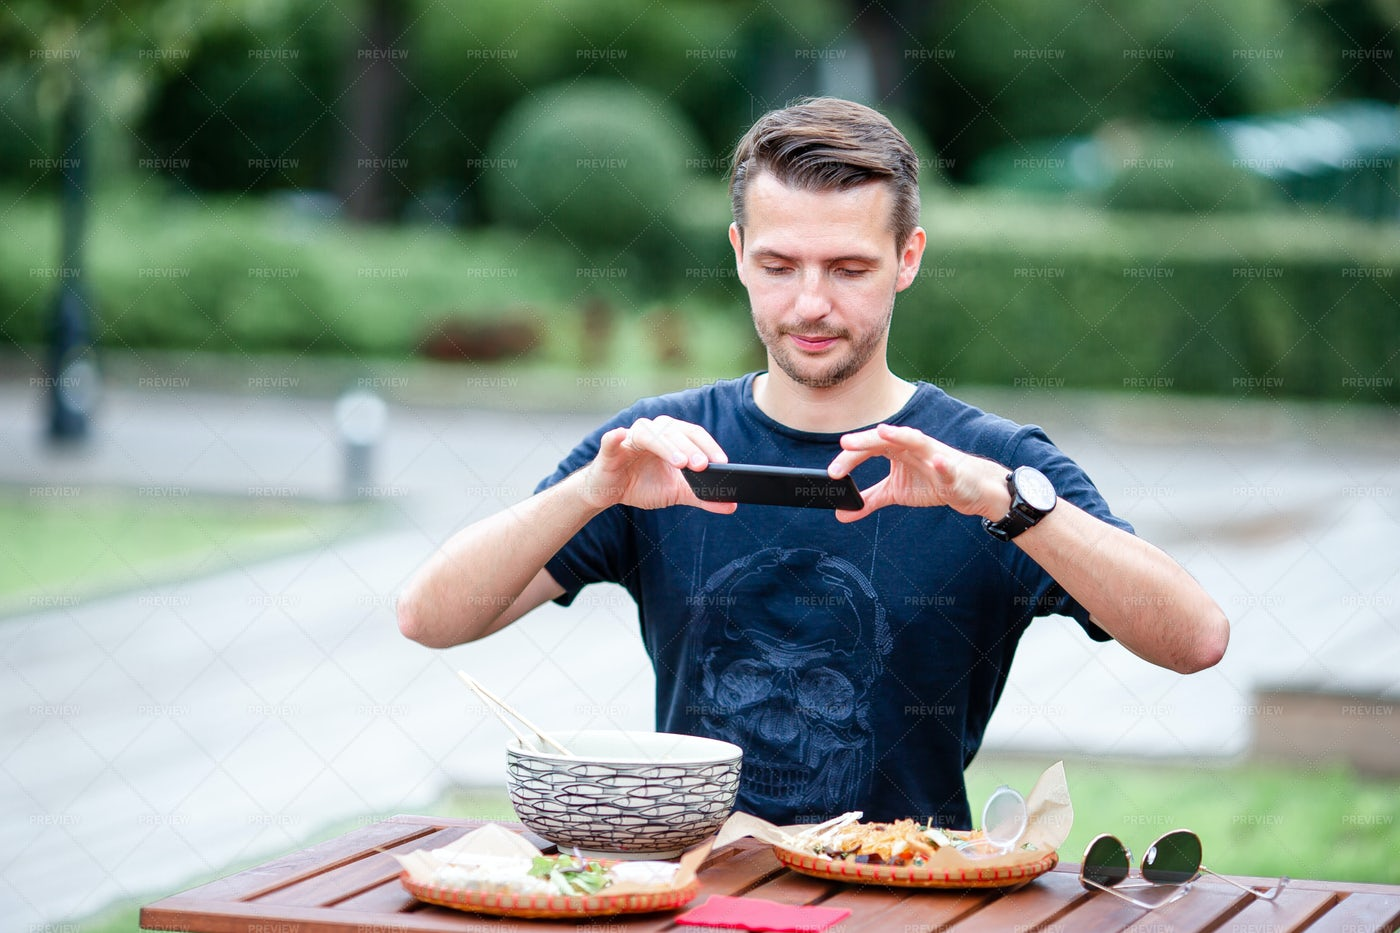 Taking Picture Of Delicious Meal: Stock Photos